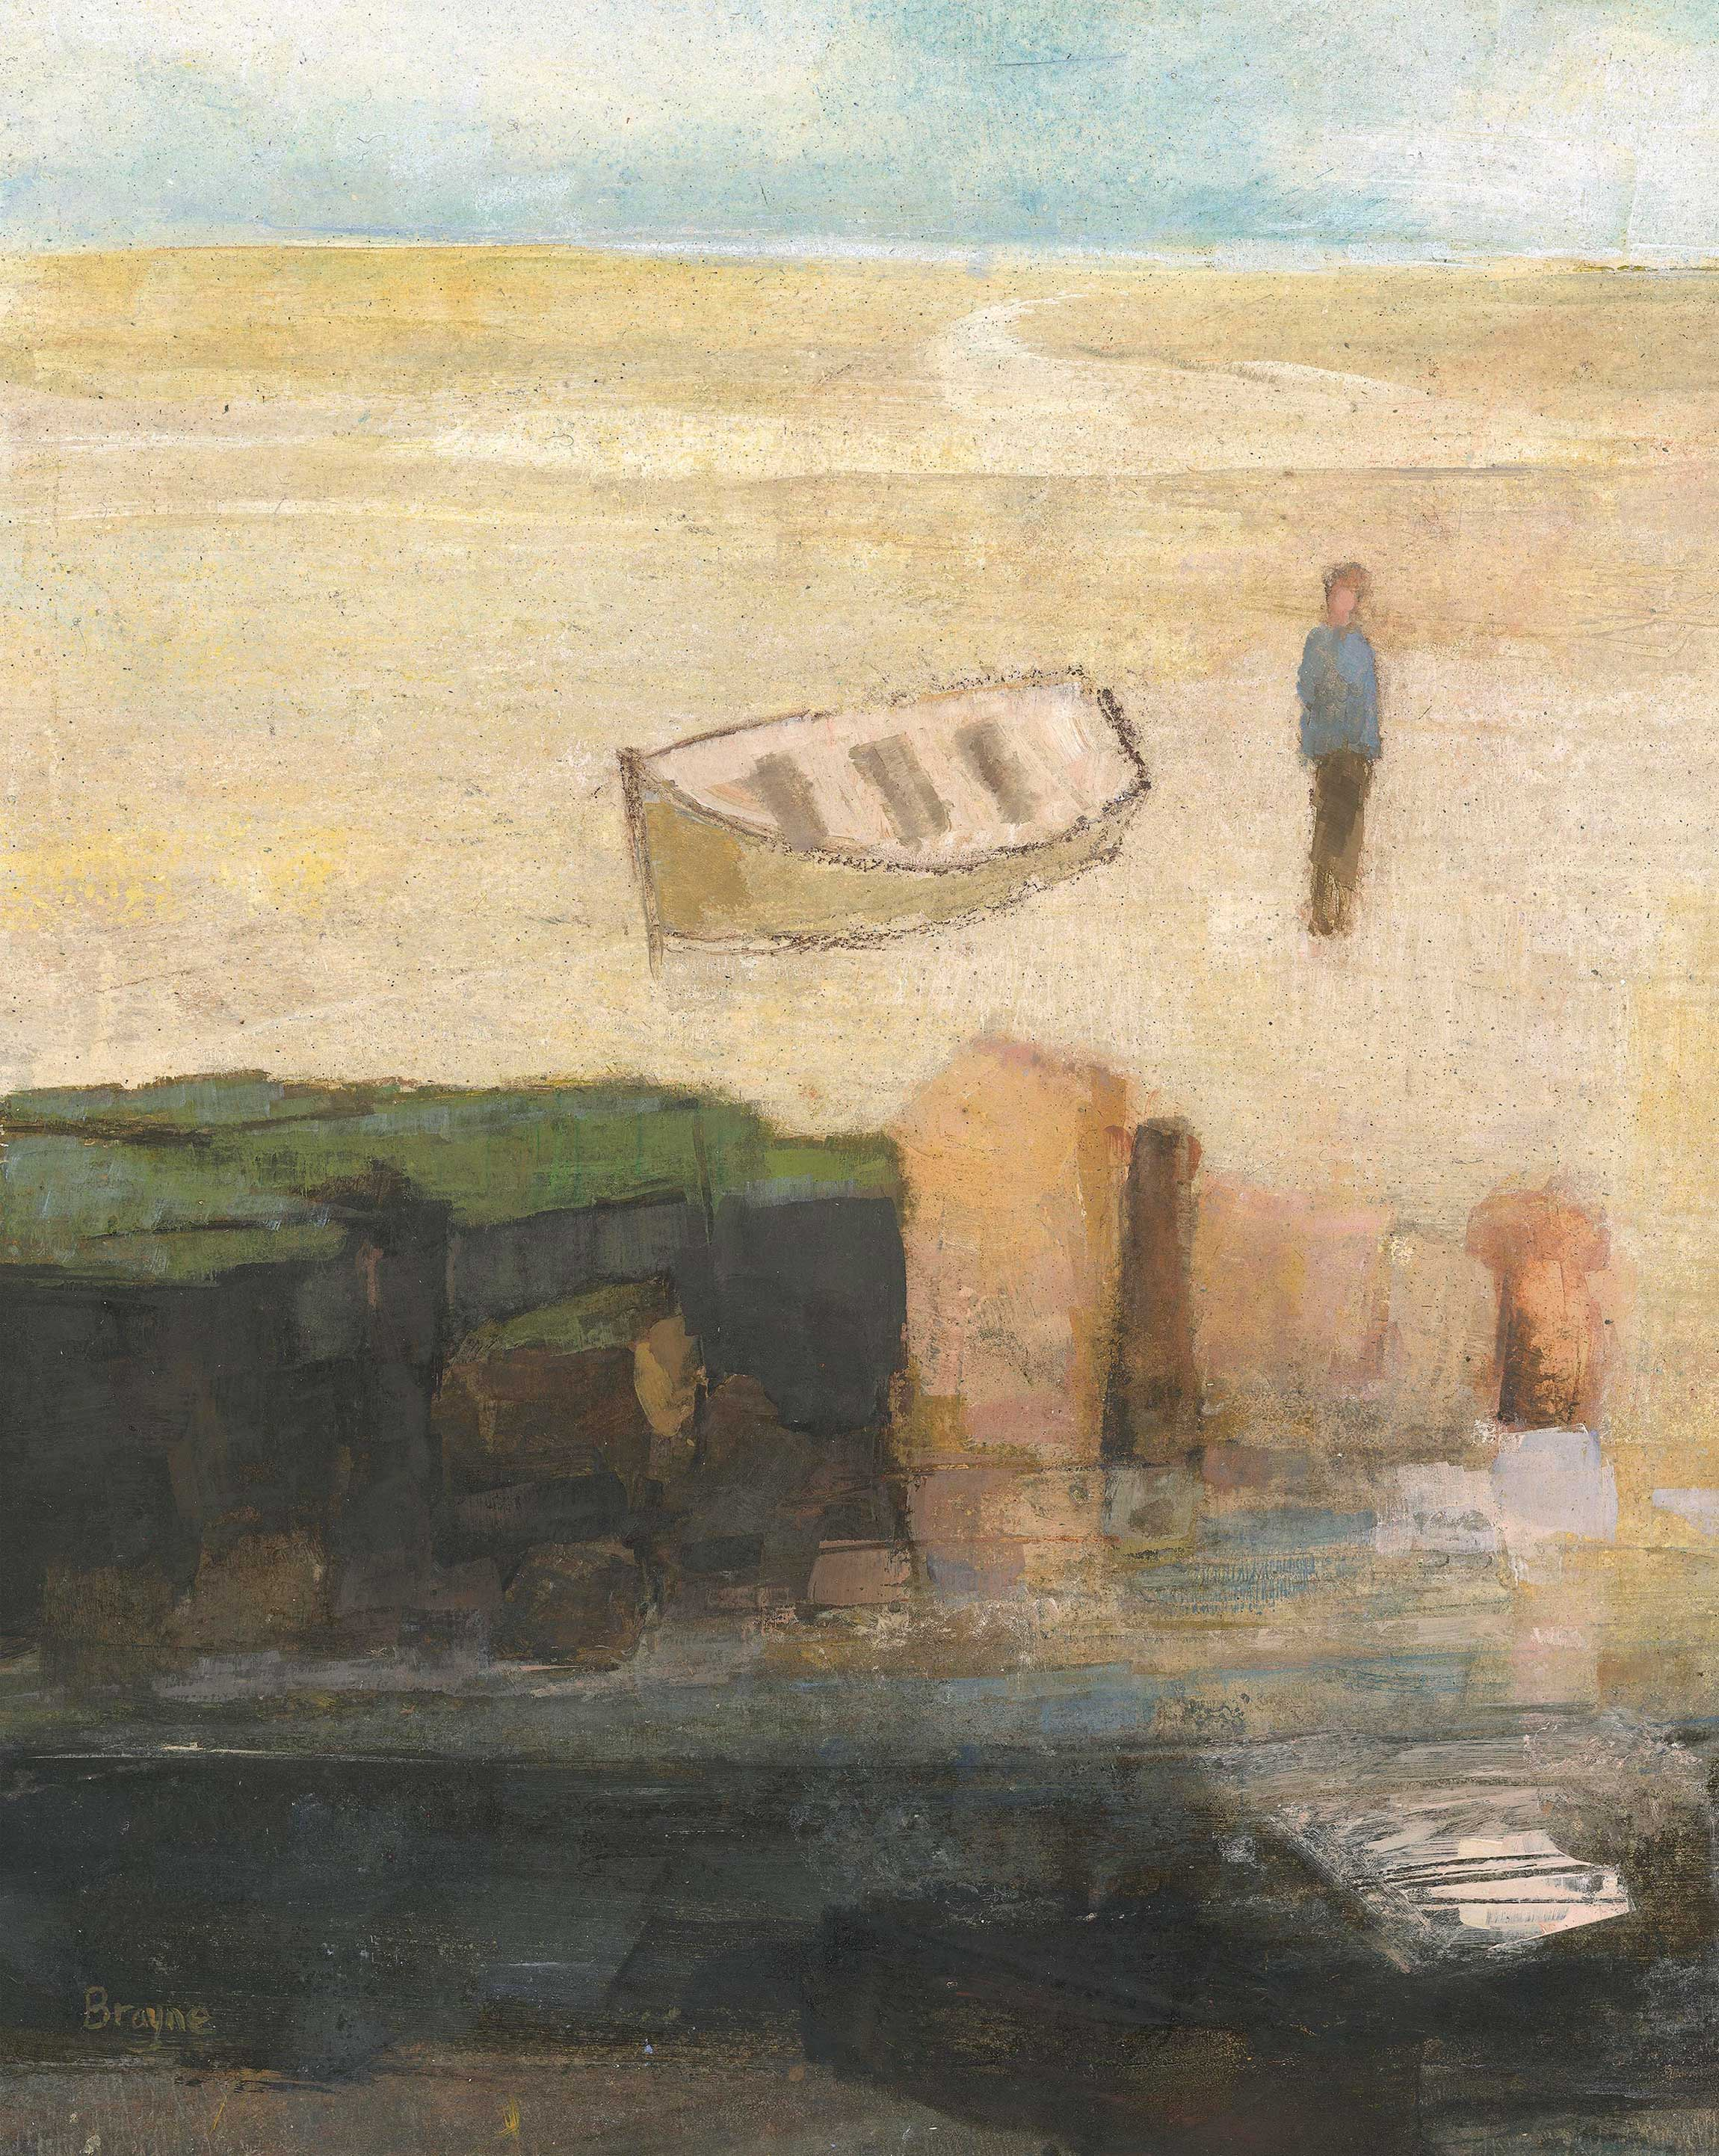 Rockpool by David Brayne RWS